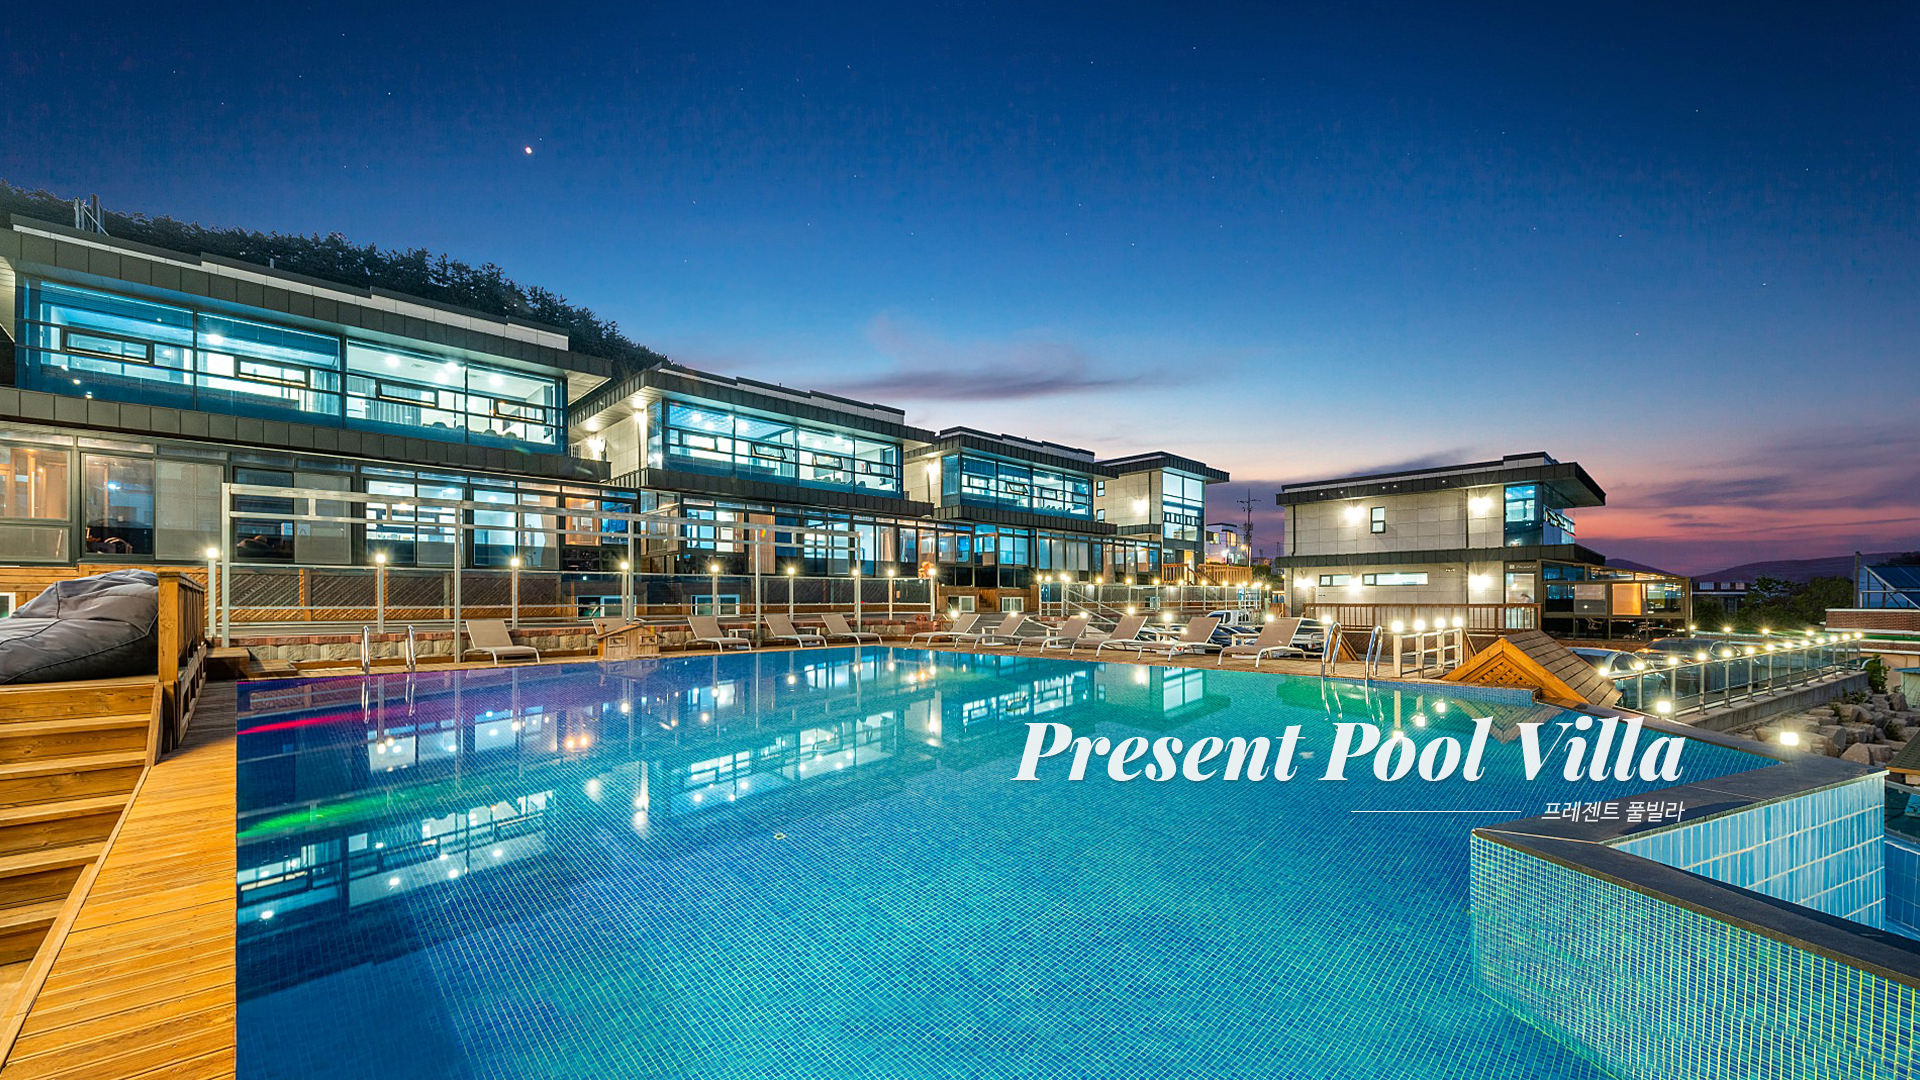 Welcome to Present Pool Villa